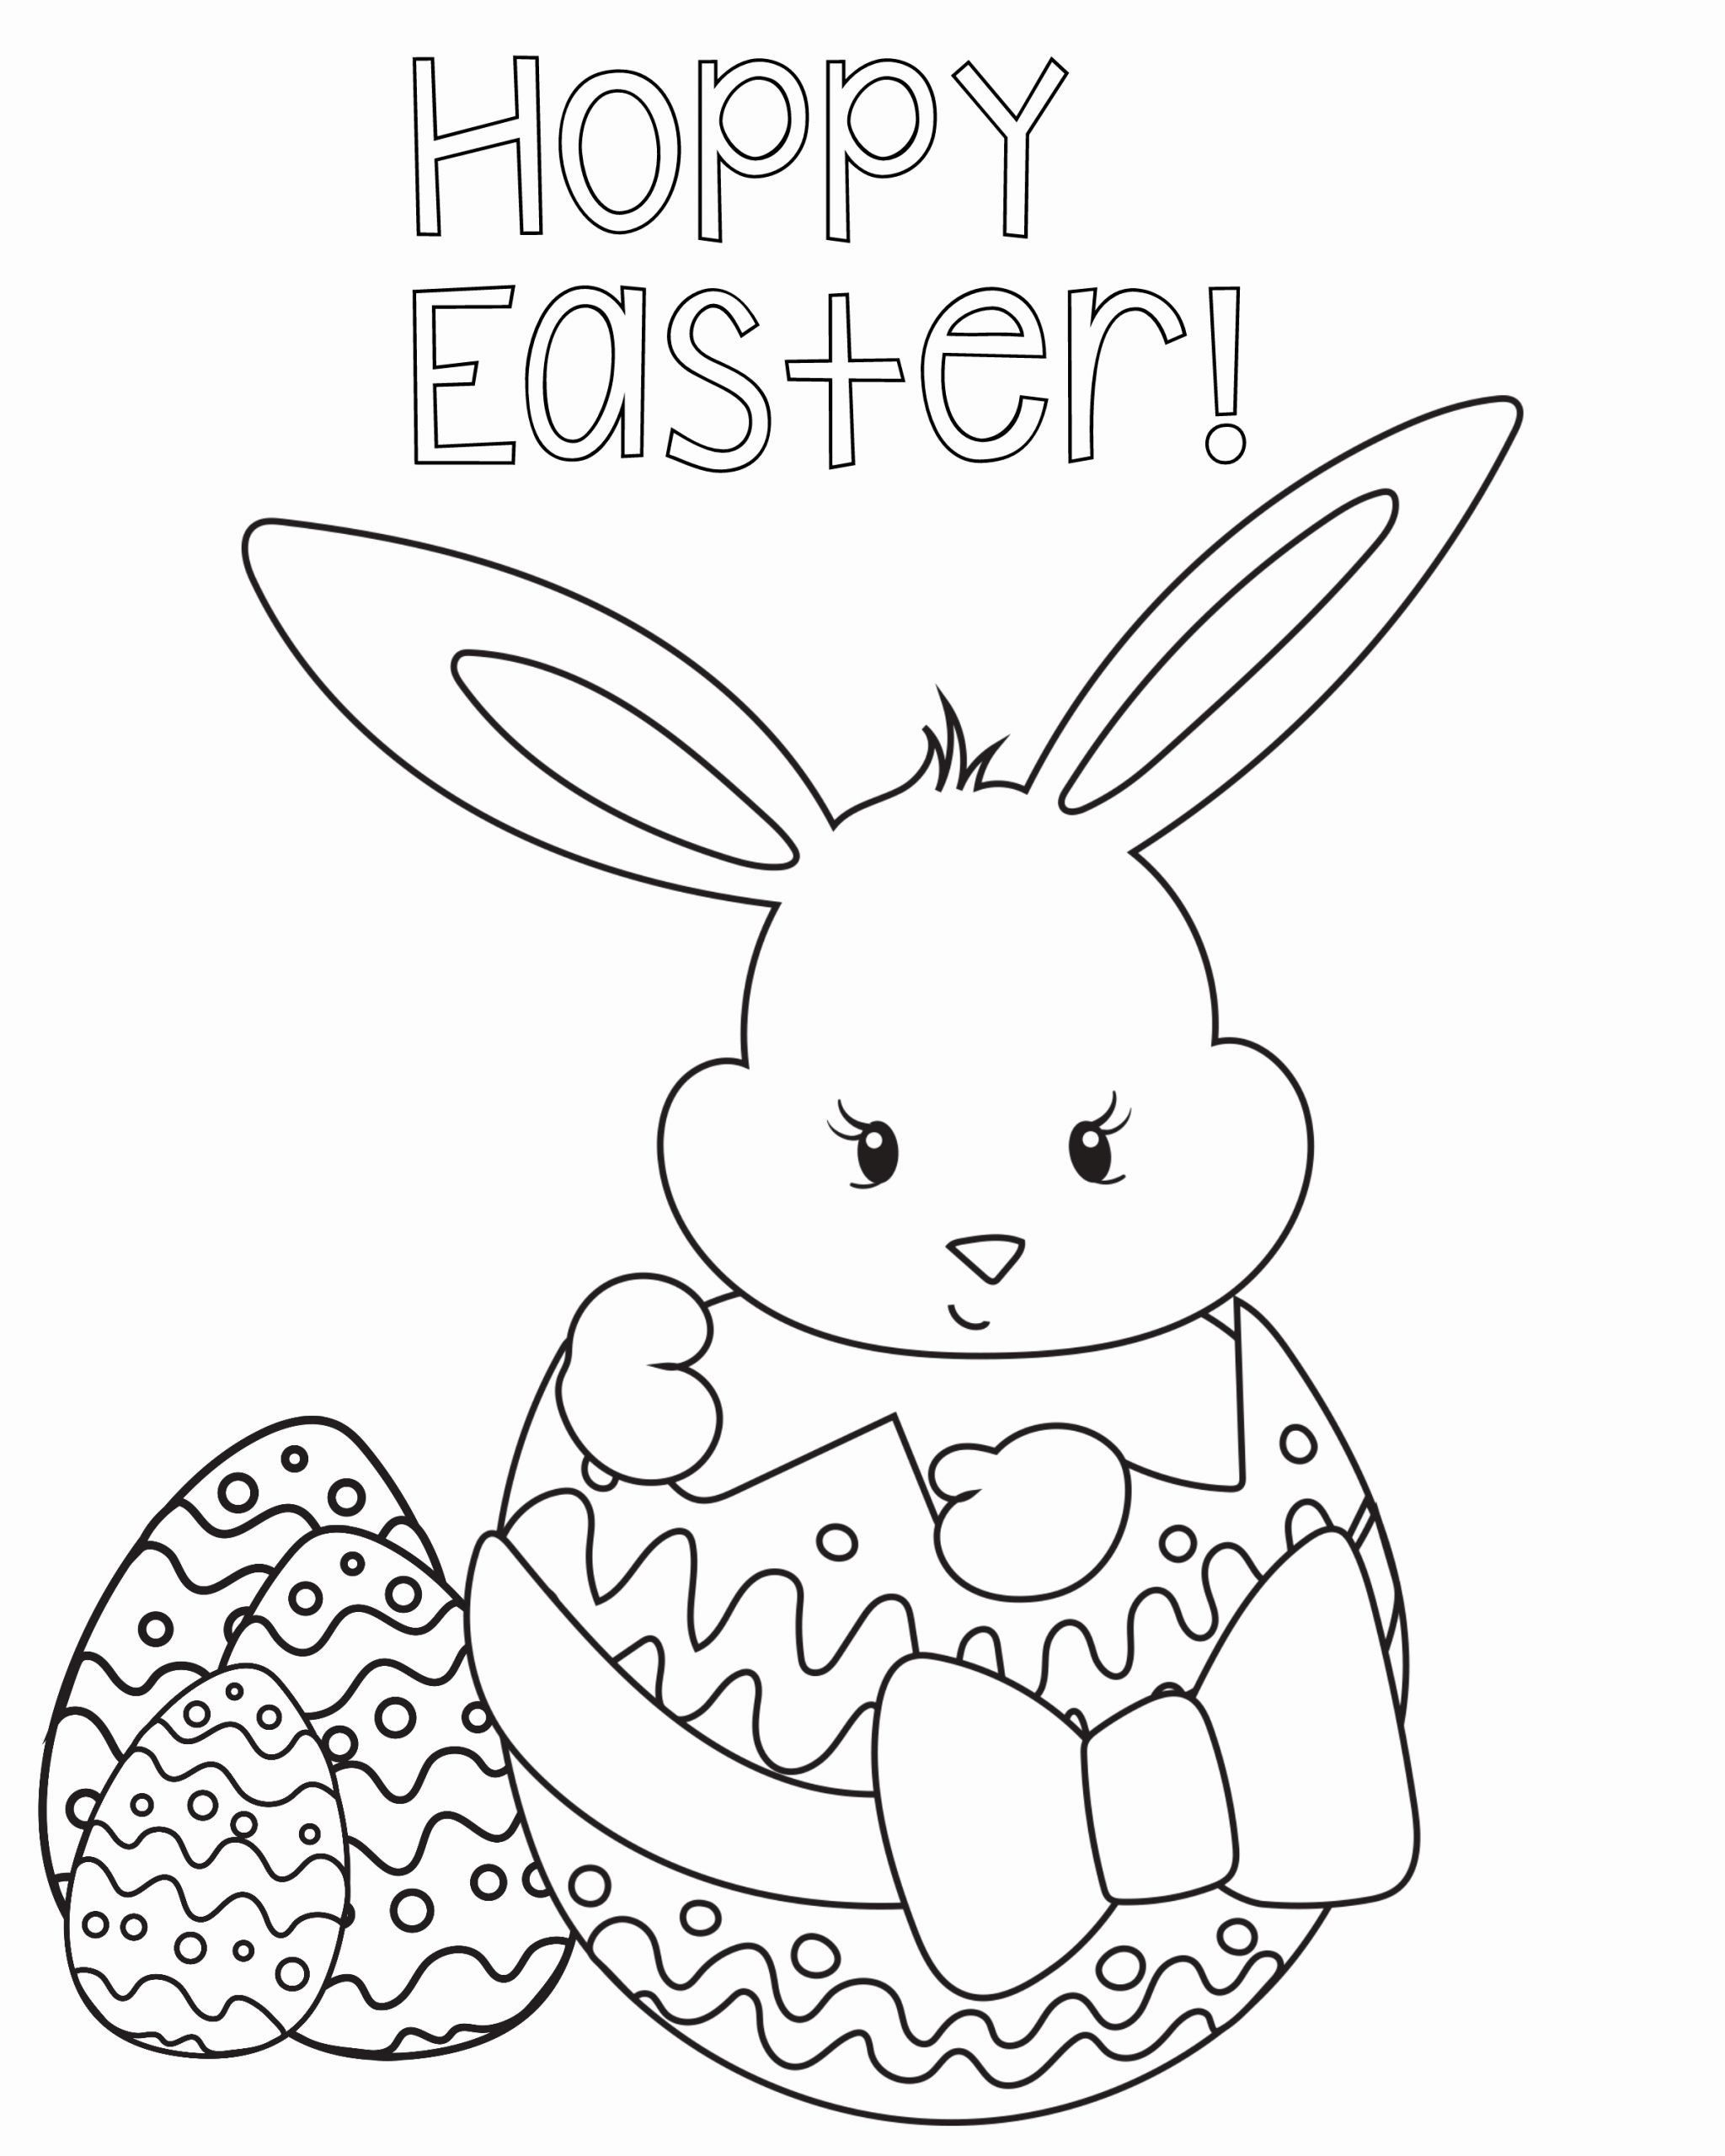 15+ Free printable easter bunny coloring pages inspirations